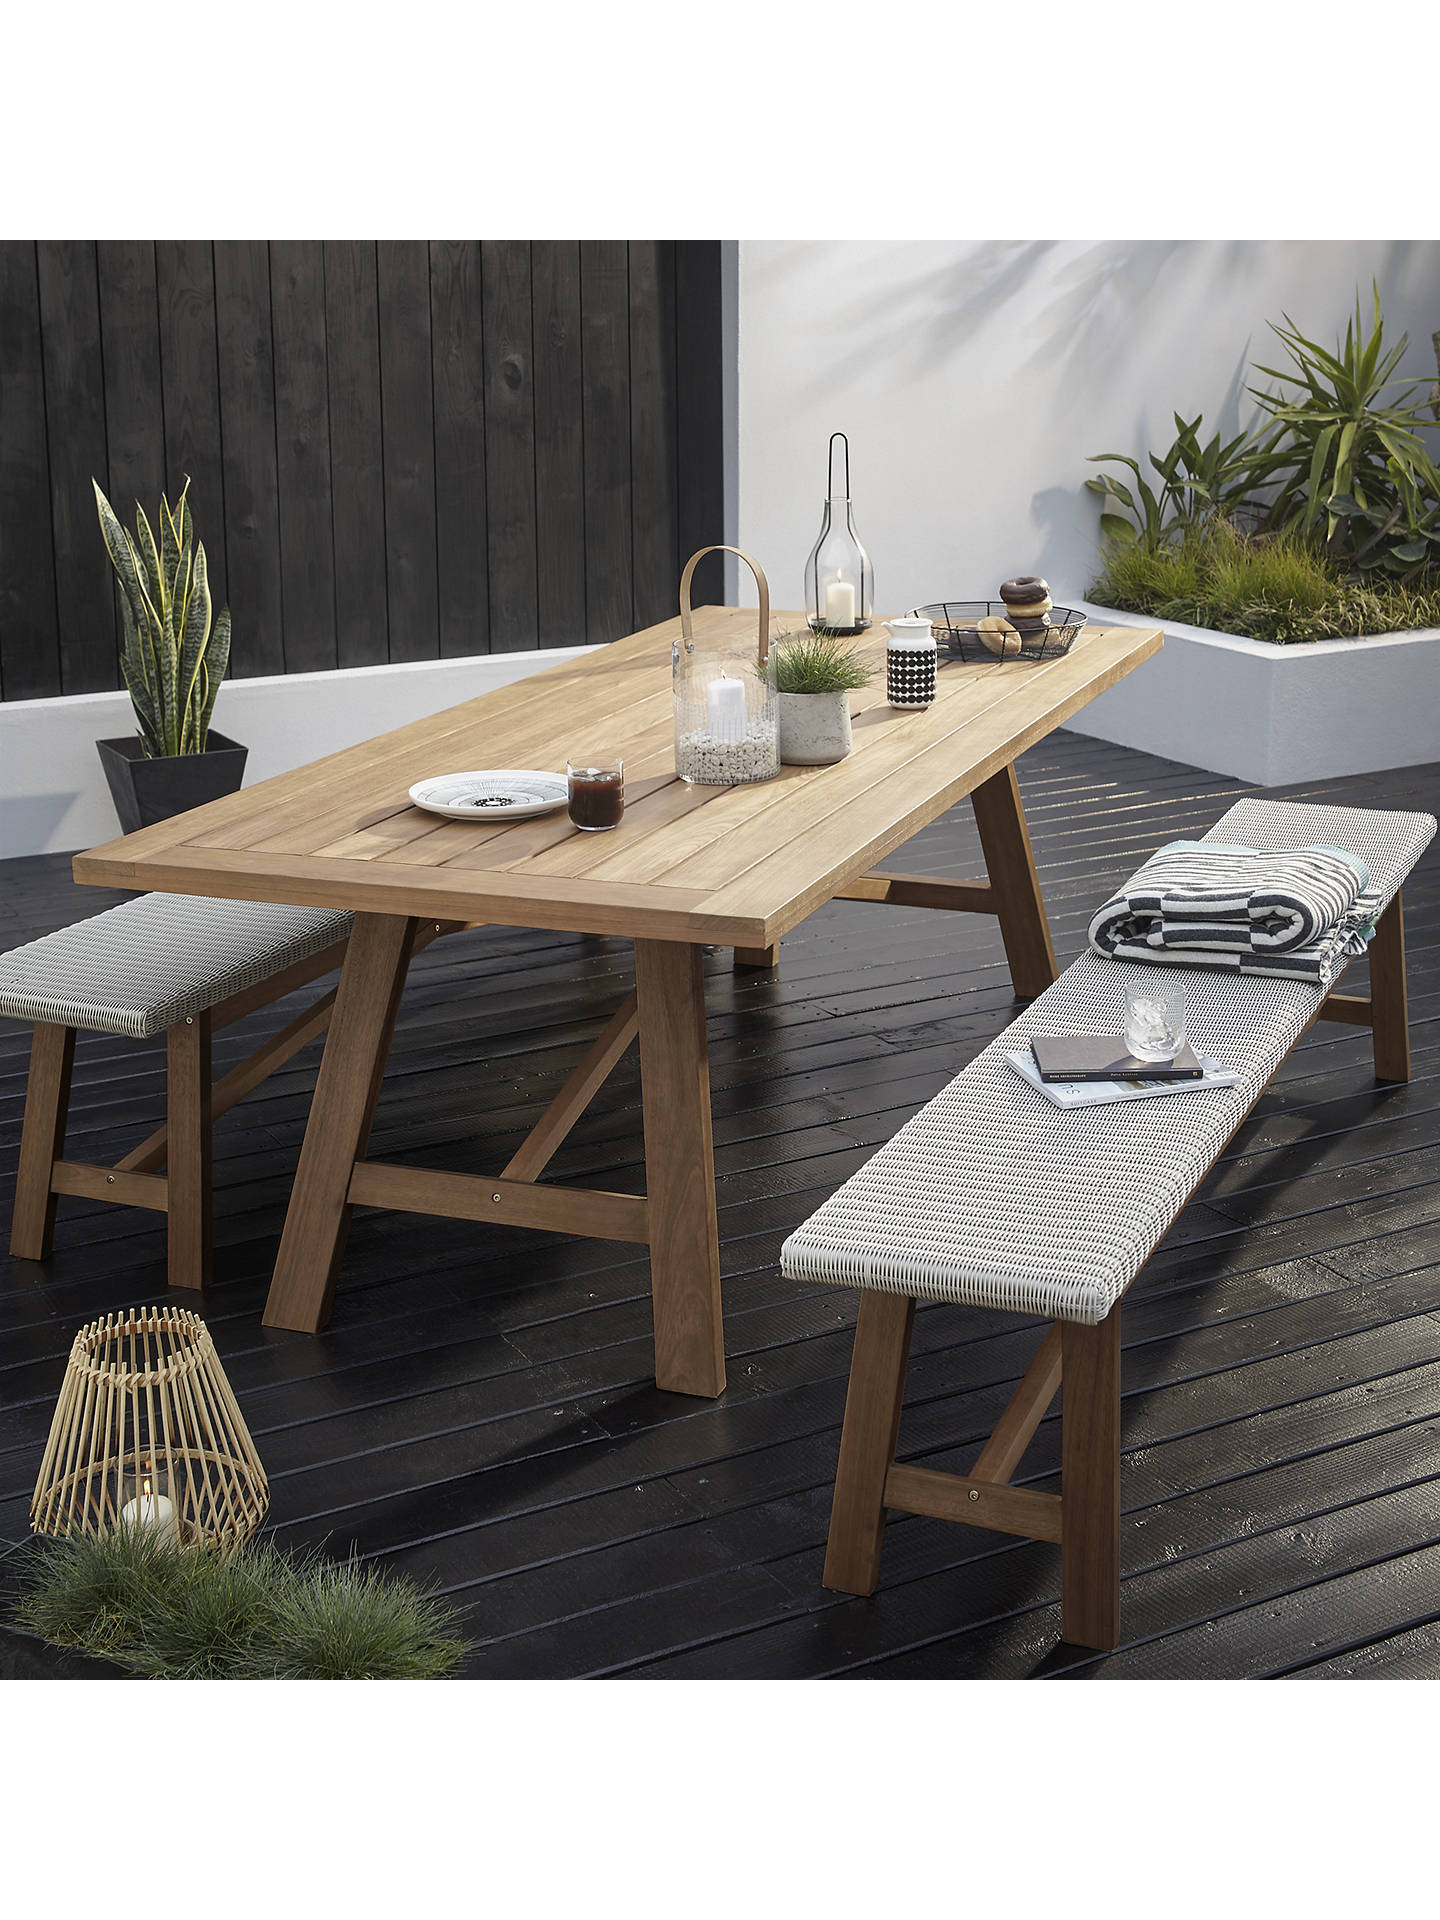 John Lewis Partners Stockholm 8 10 Seater Garden Dining Table Bench Set Fsc Certified Eucalyptus Natural